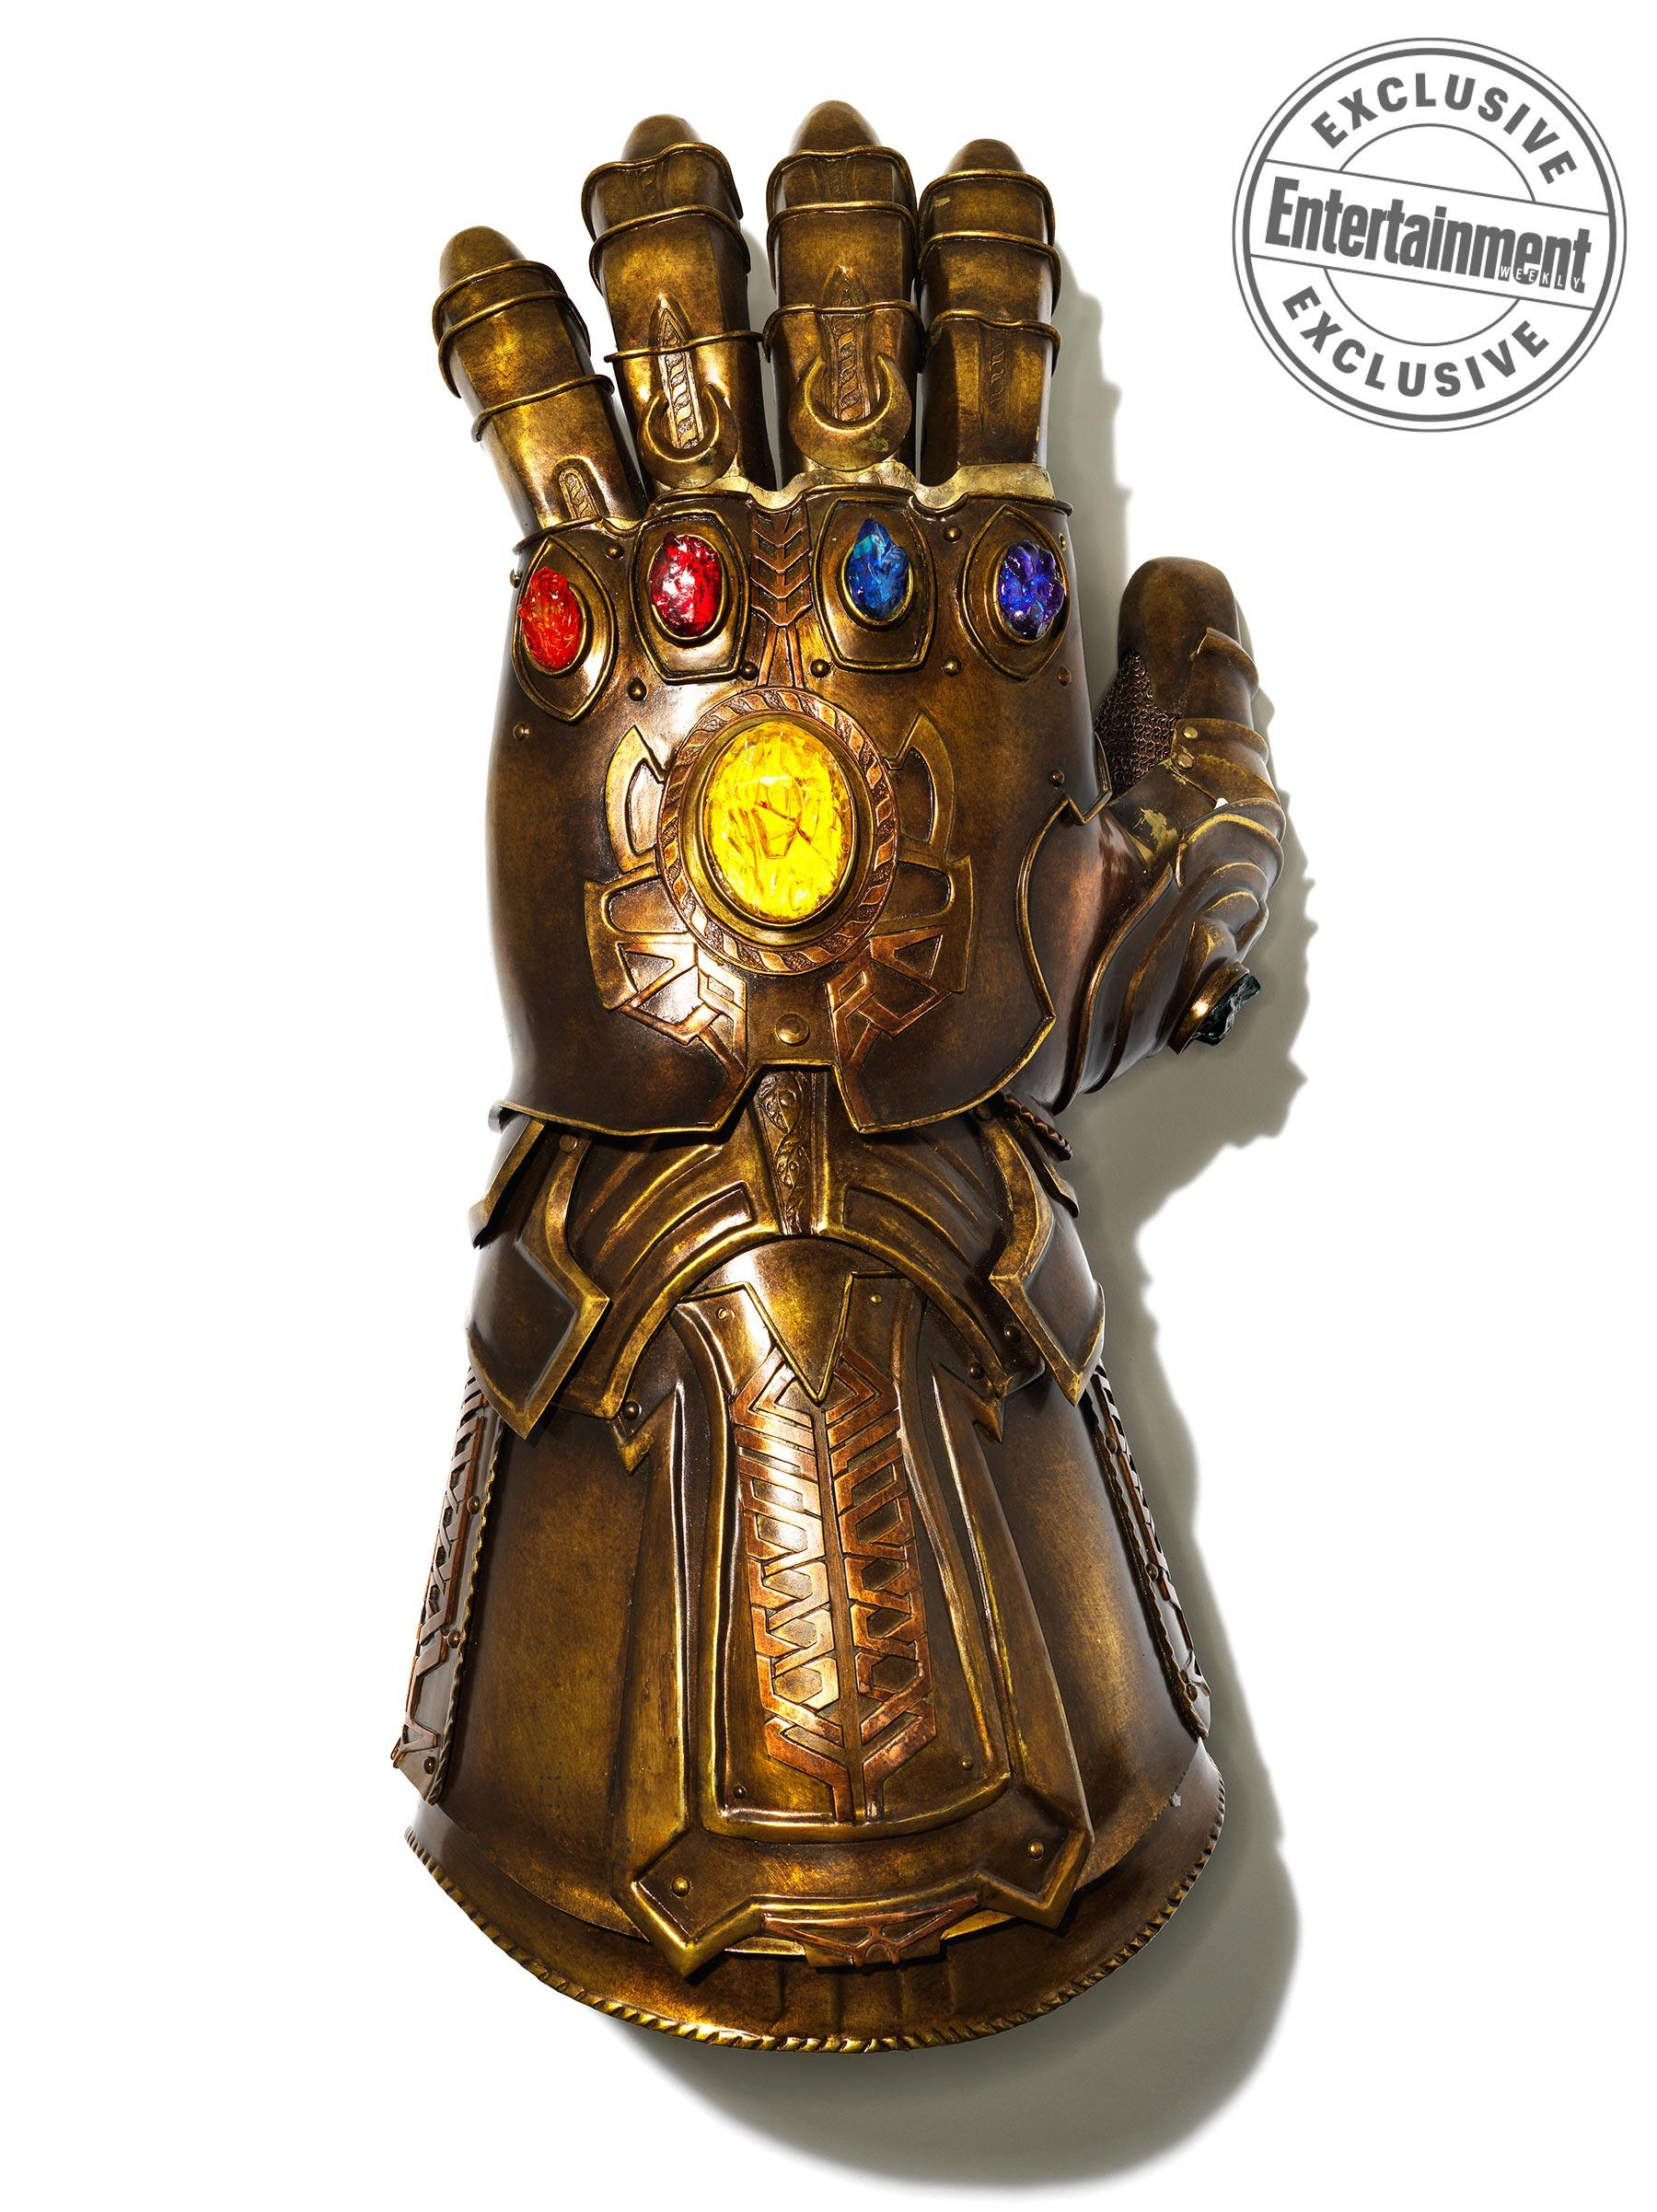 Eagle-eyed viewers got their first look at the Infinity Gauntlet in 2011's <em>Thor</em>, where it made a blink-and-you'll-miss-it appearance as a trophy in Odin's weapons vault. (It turned out to be a fake, as revealed in 2017's <em>Thor: Ragnarok</em>.) The six Infinity Stones that give the Gauntlet its vast power have been popping up for years, with Thanos determined to possess them all. Here's what we know thus far about each one.